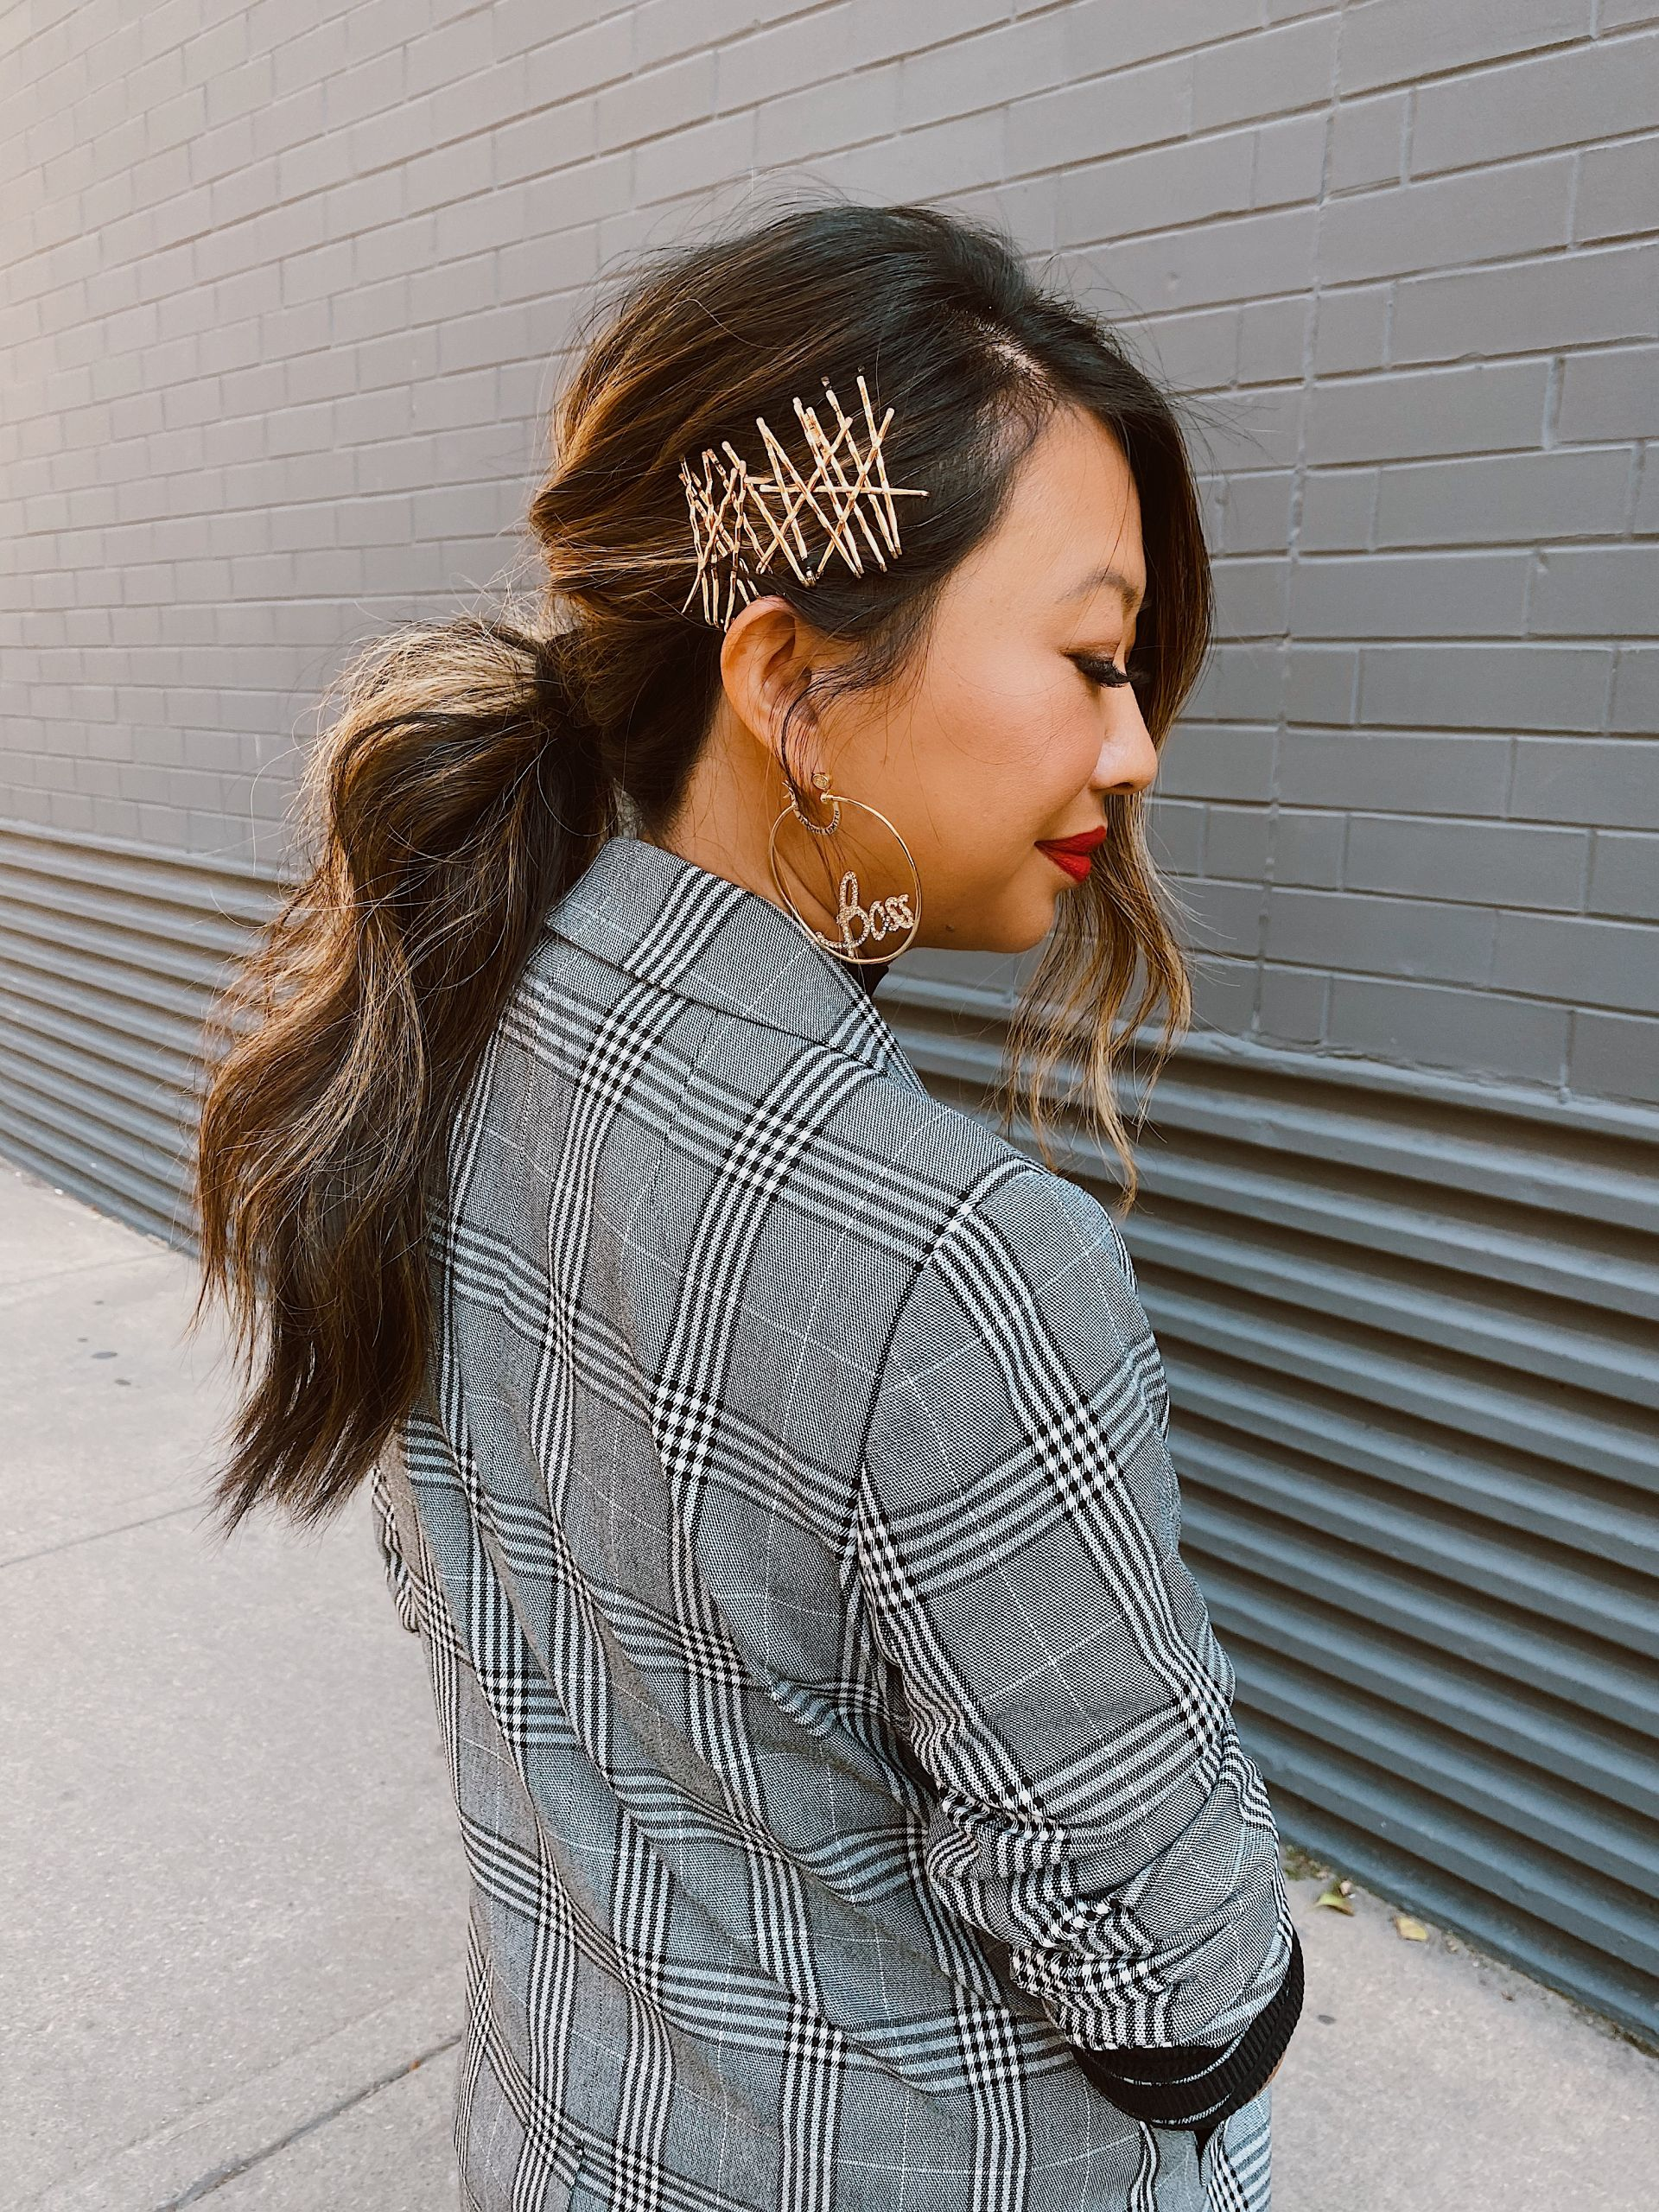 Going out Hair, easy hair styles, best ponytail style, best asian hair, best chicago hair, best hair styles for night, best wave, jennifer worman, chicago beauty blogger, bobby pin inspiration hairstyles, bobby pin ponytail